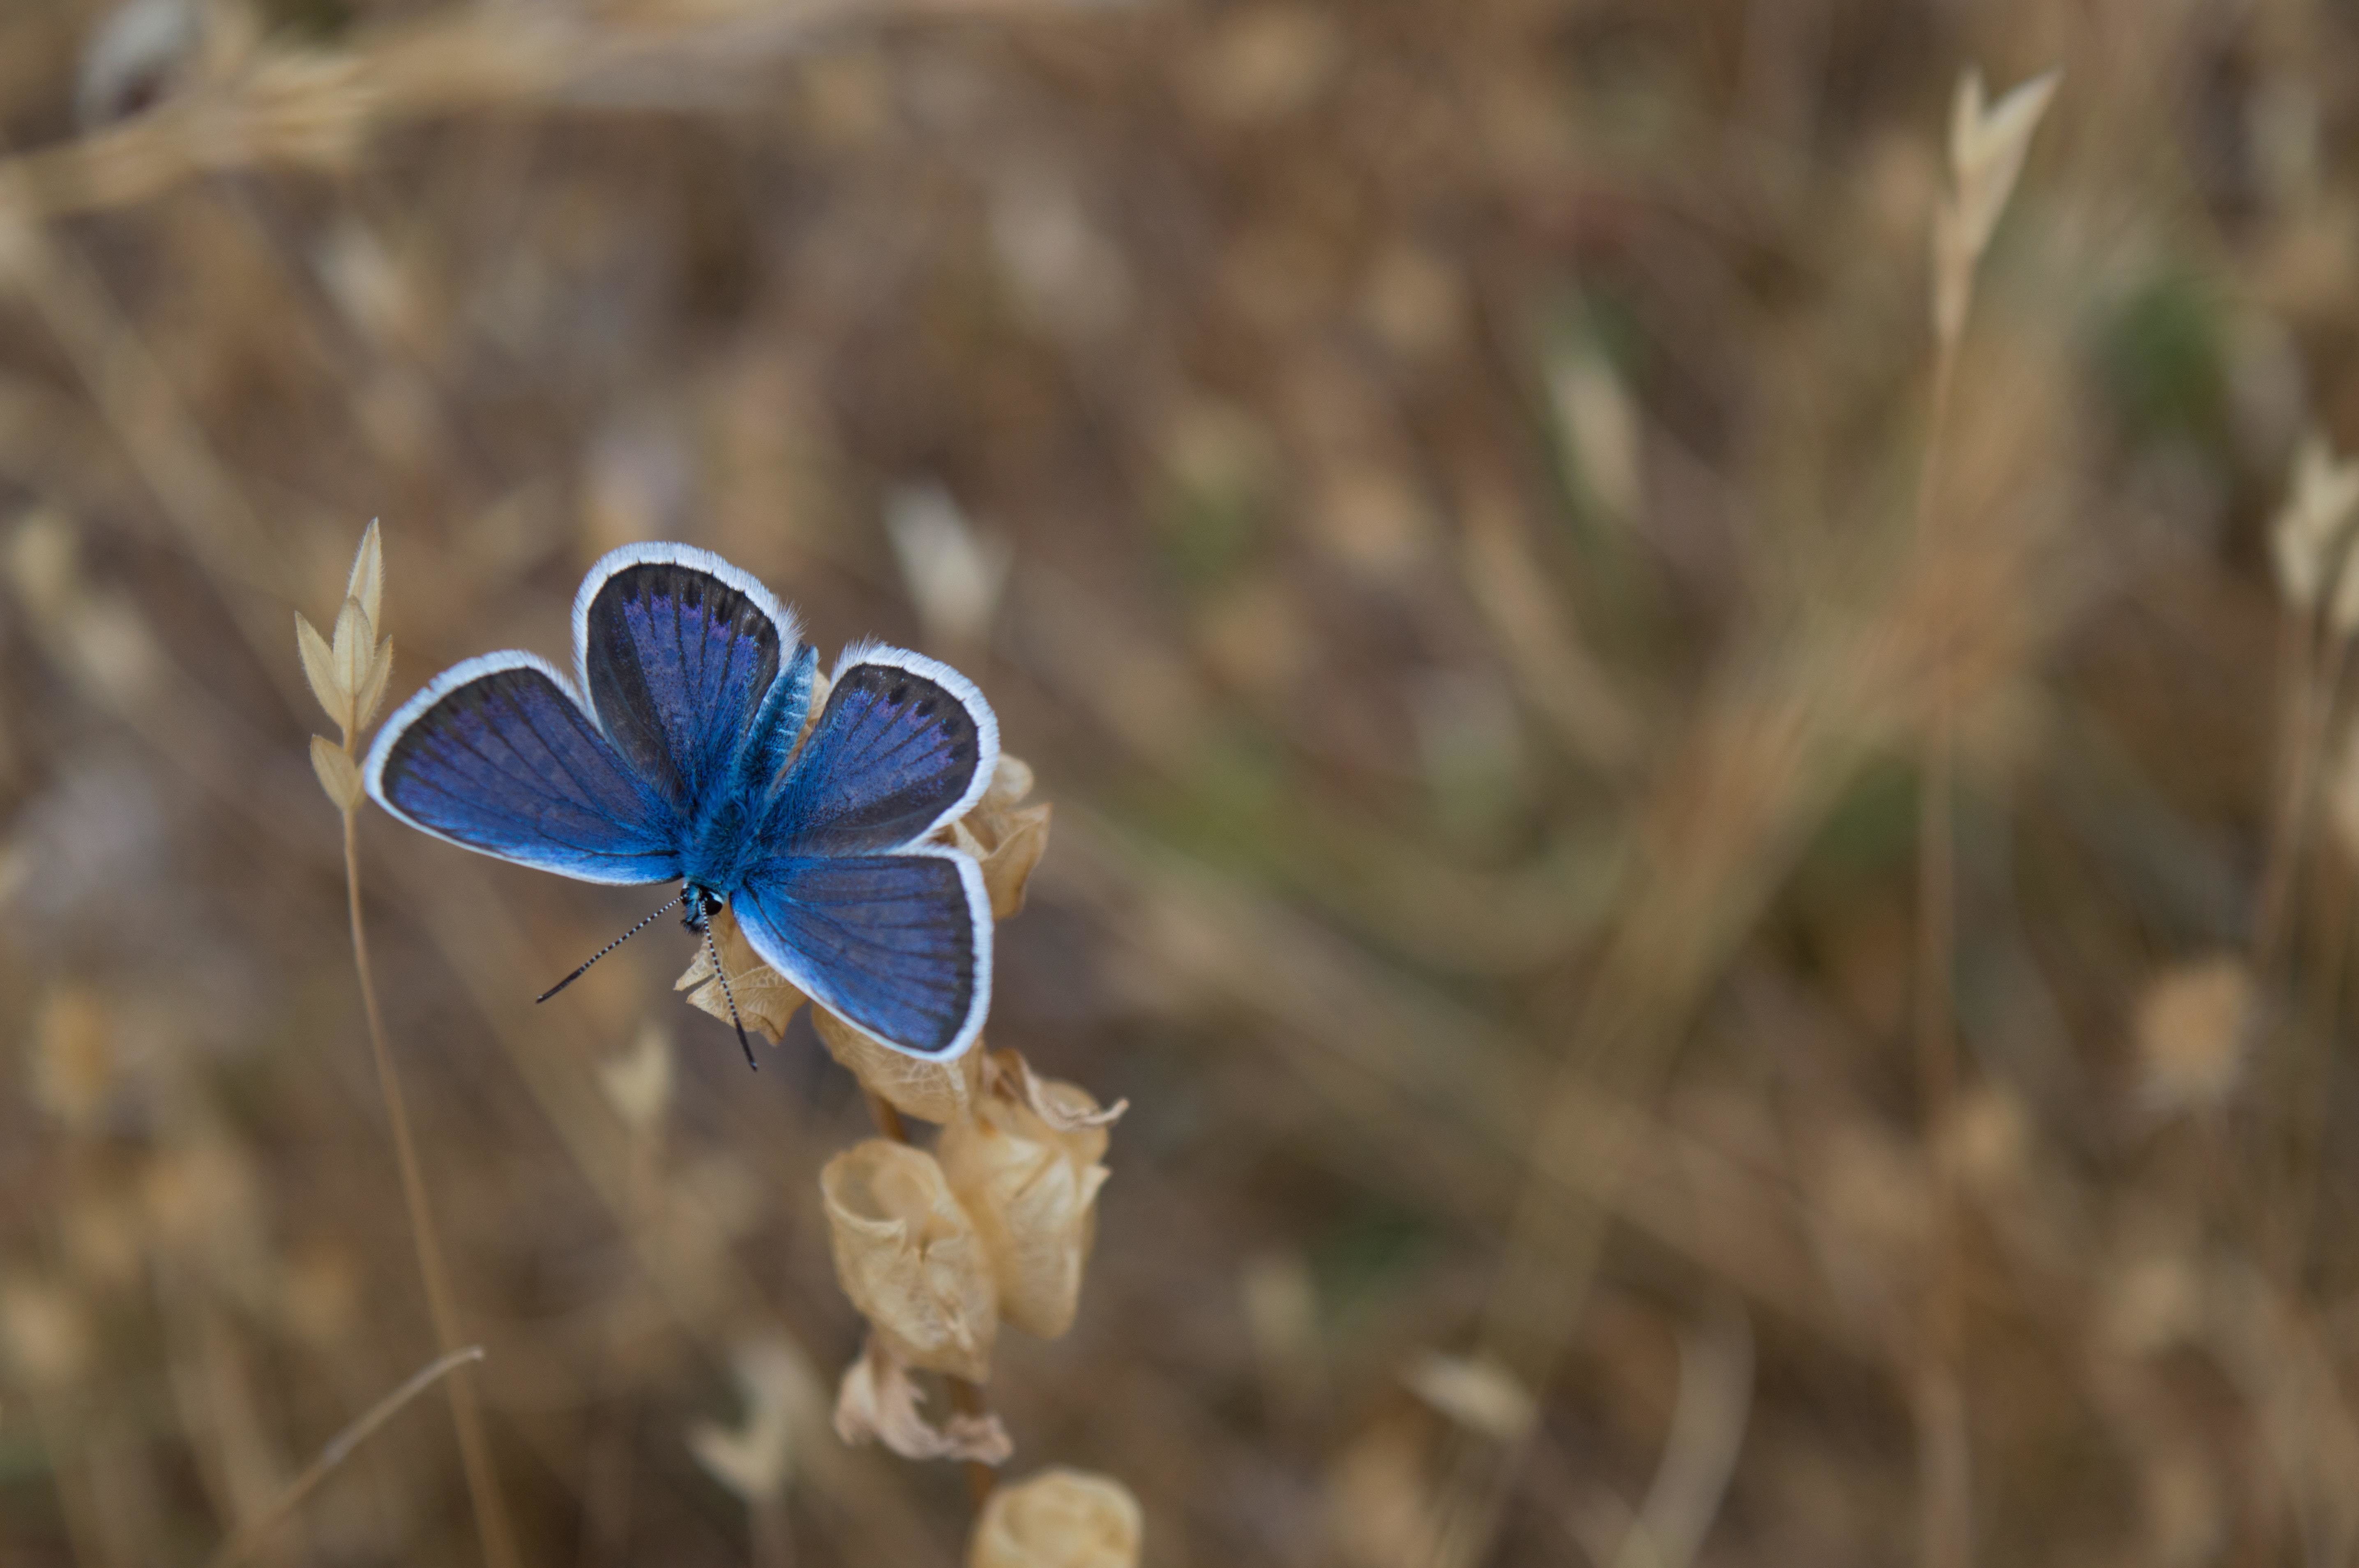 Pollinators, like this butterfly here, are responsible for the survival of some crops, but not all of them.